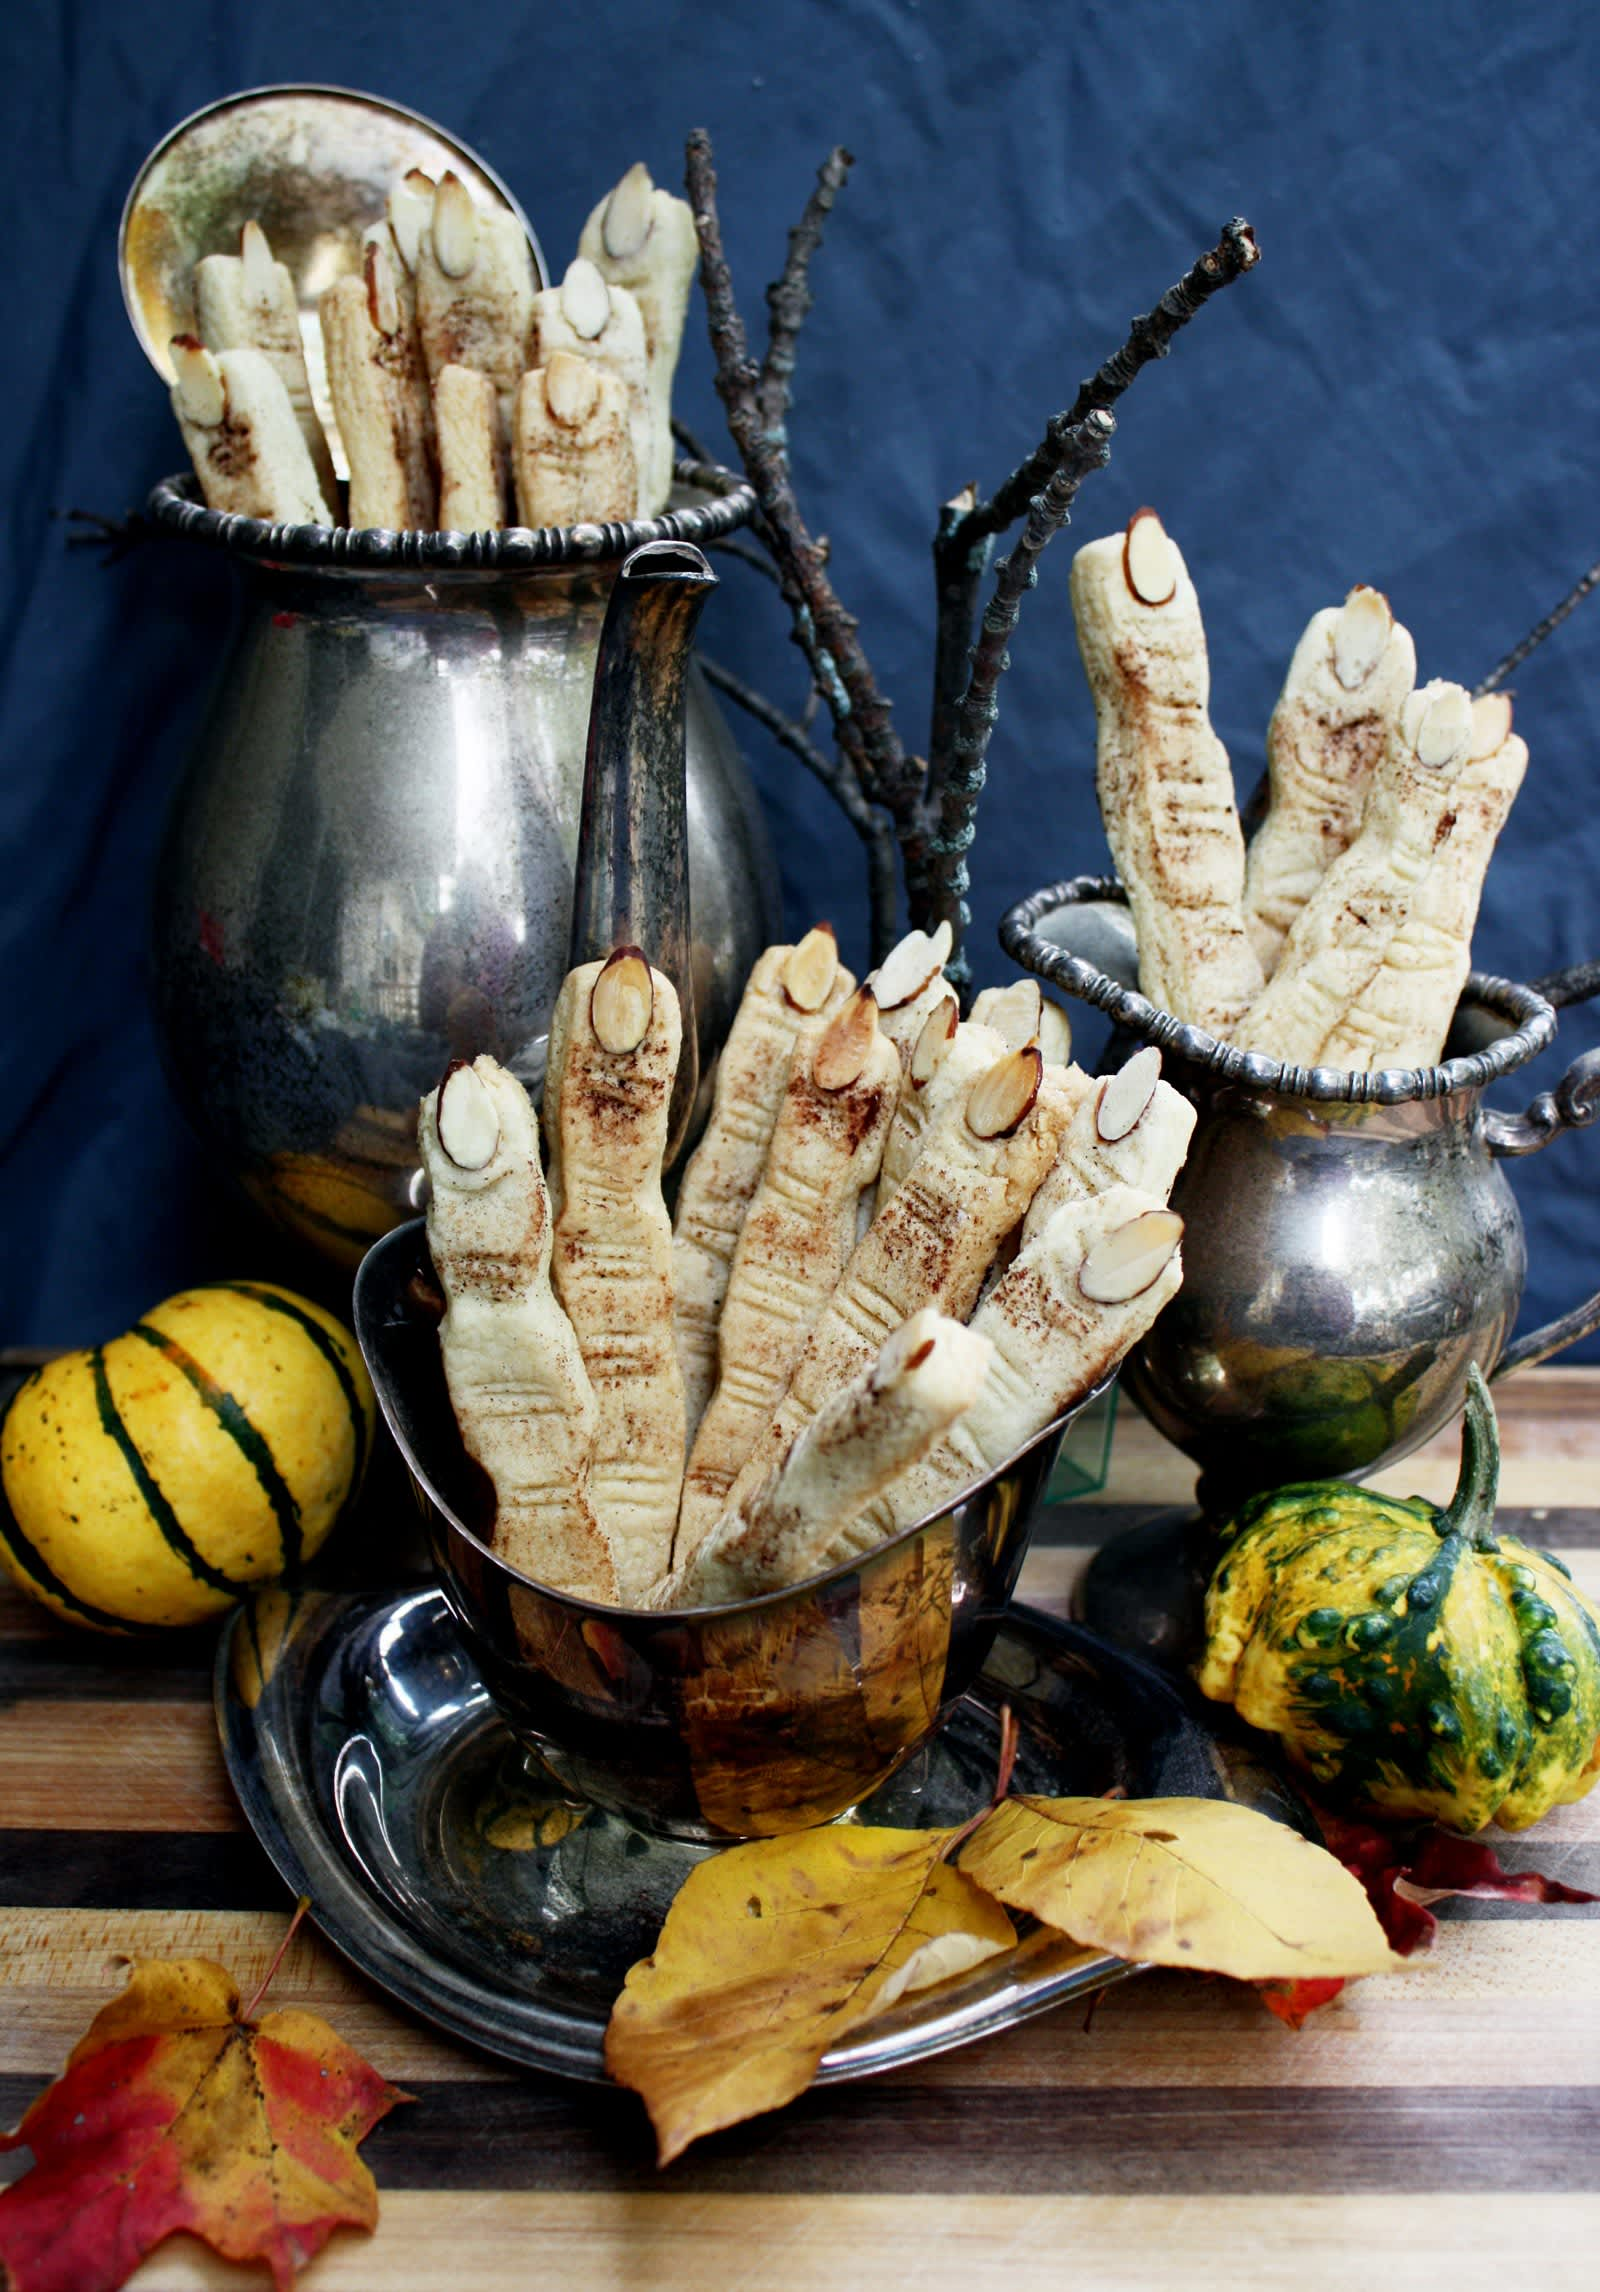 We Tried 7 Popular Halloween Recipes from Pinterest (So You Don't Have To): gallery image 3